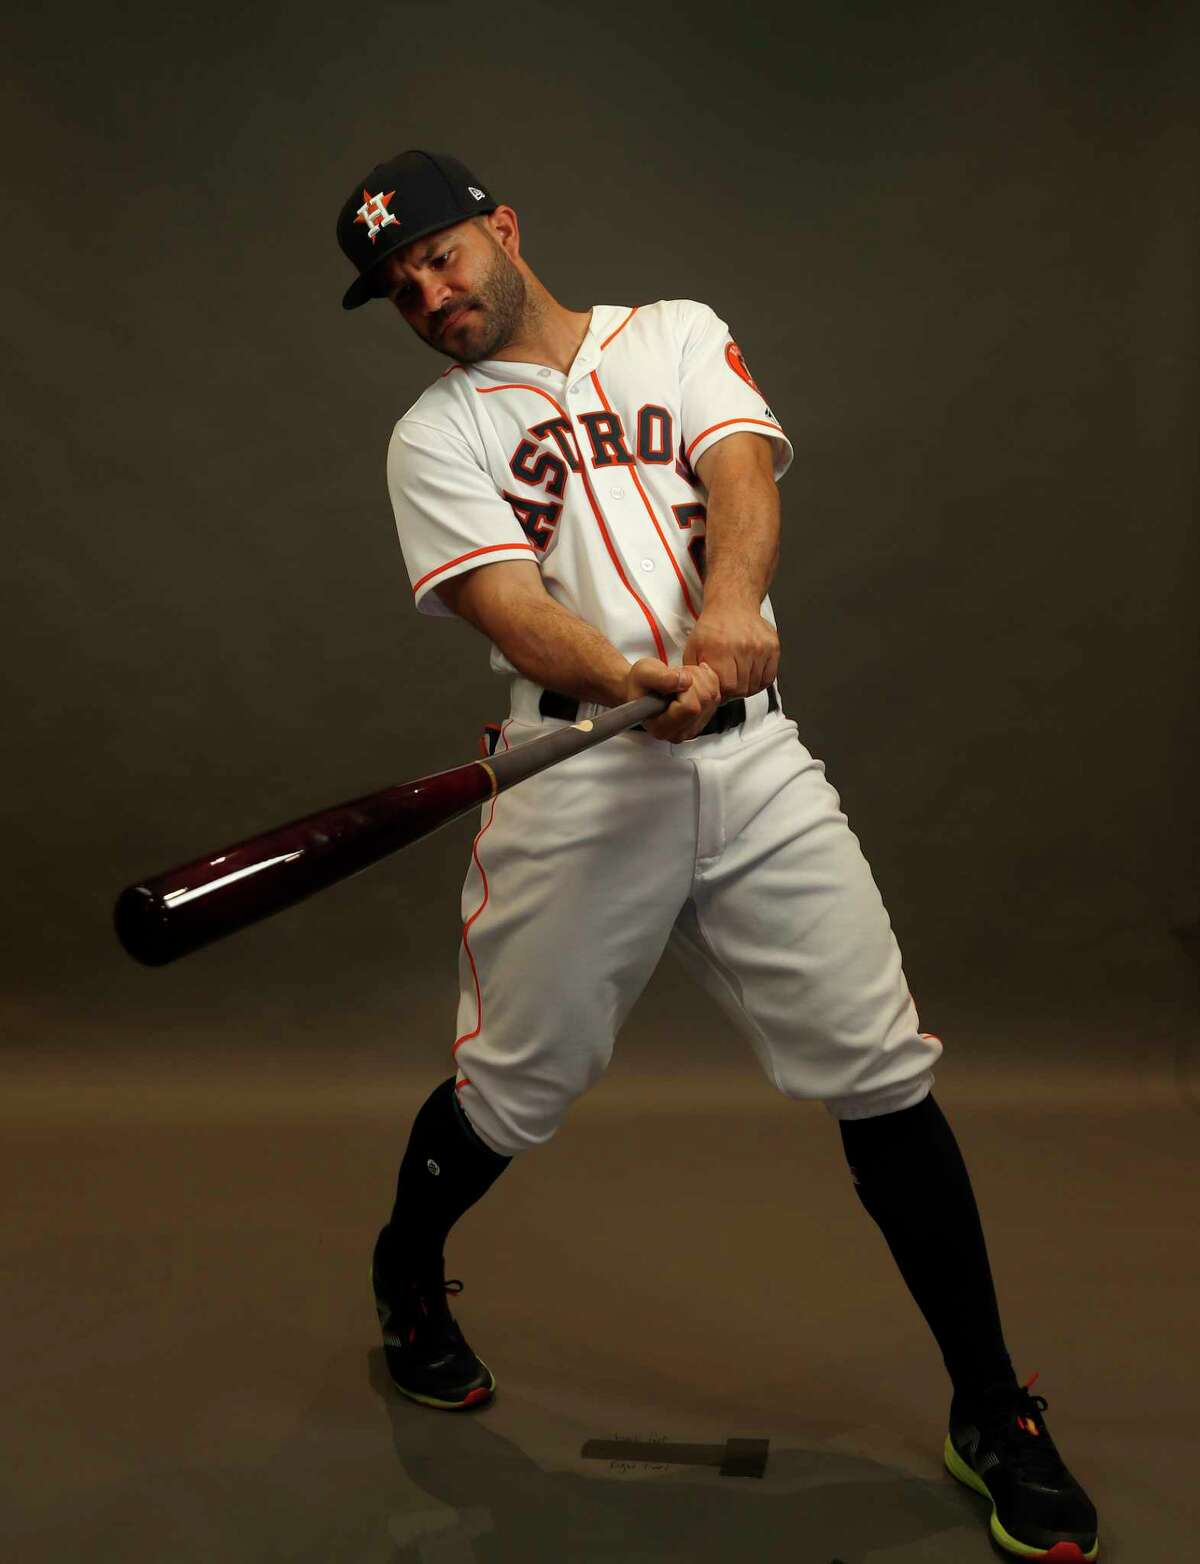 Houston Astros second baseman Jose Altuve (27) during photo day at spring training at The Ballpark of the Palm Beaches, Wednesday, Feb. 21, 2018, in West Palm Beach.